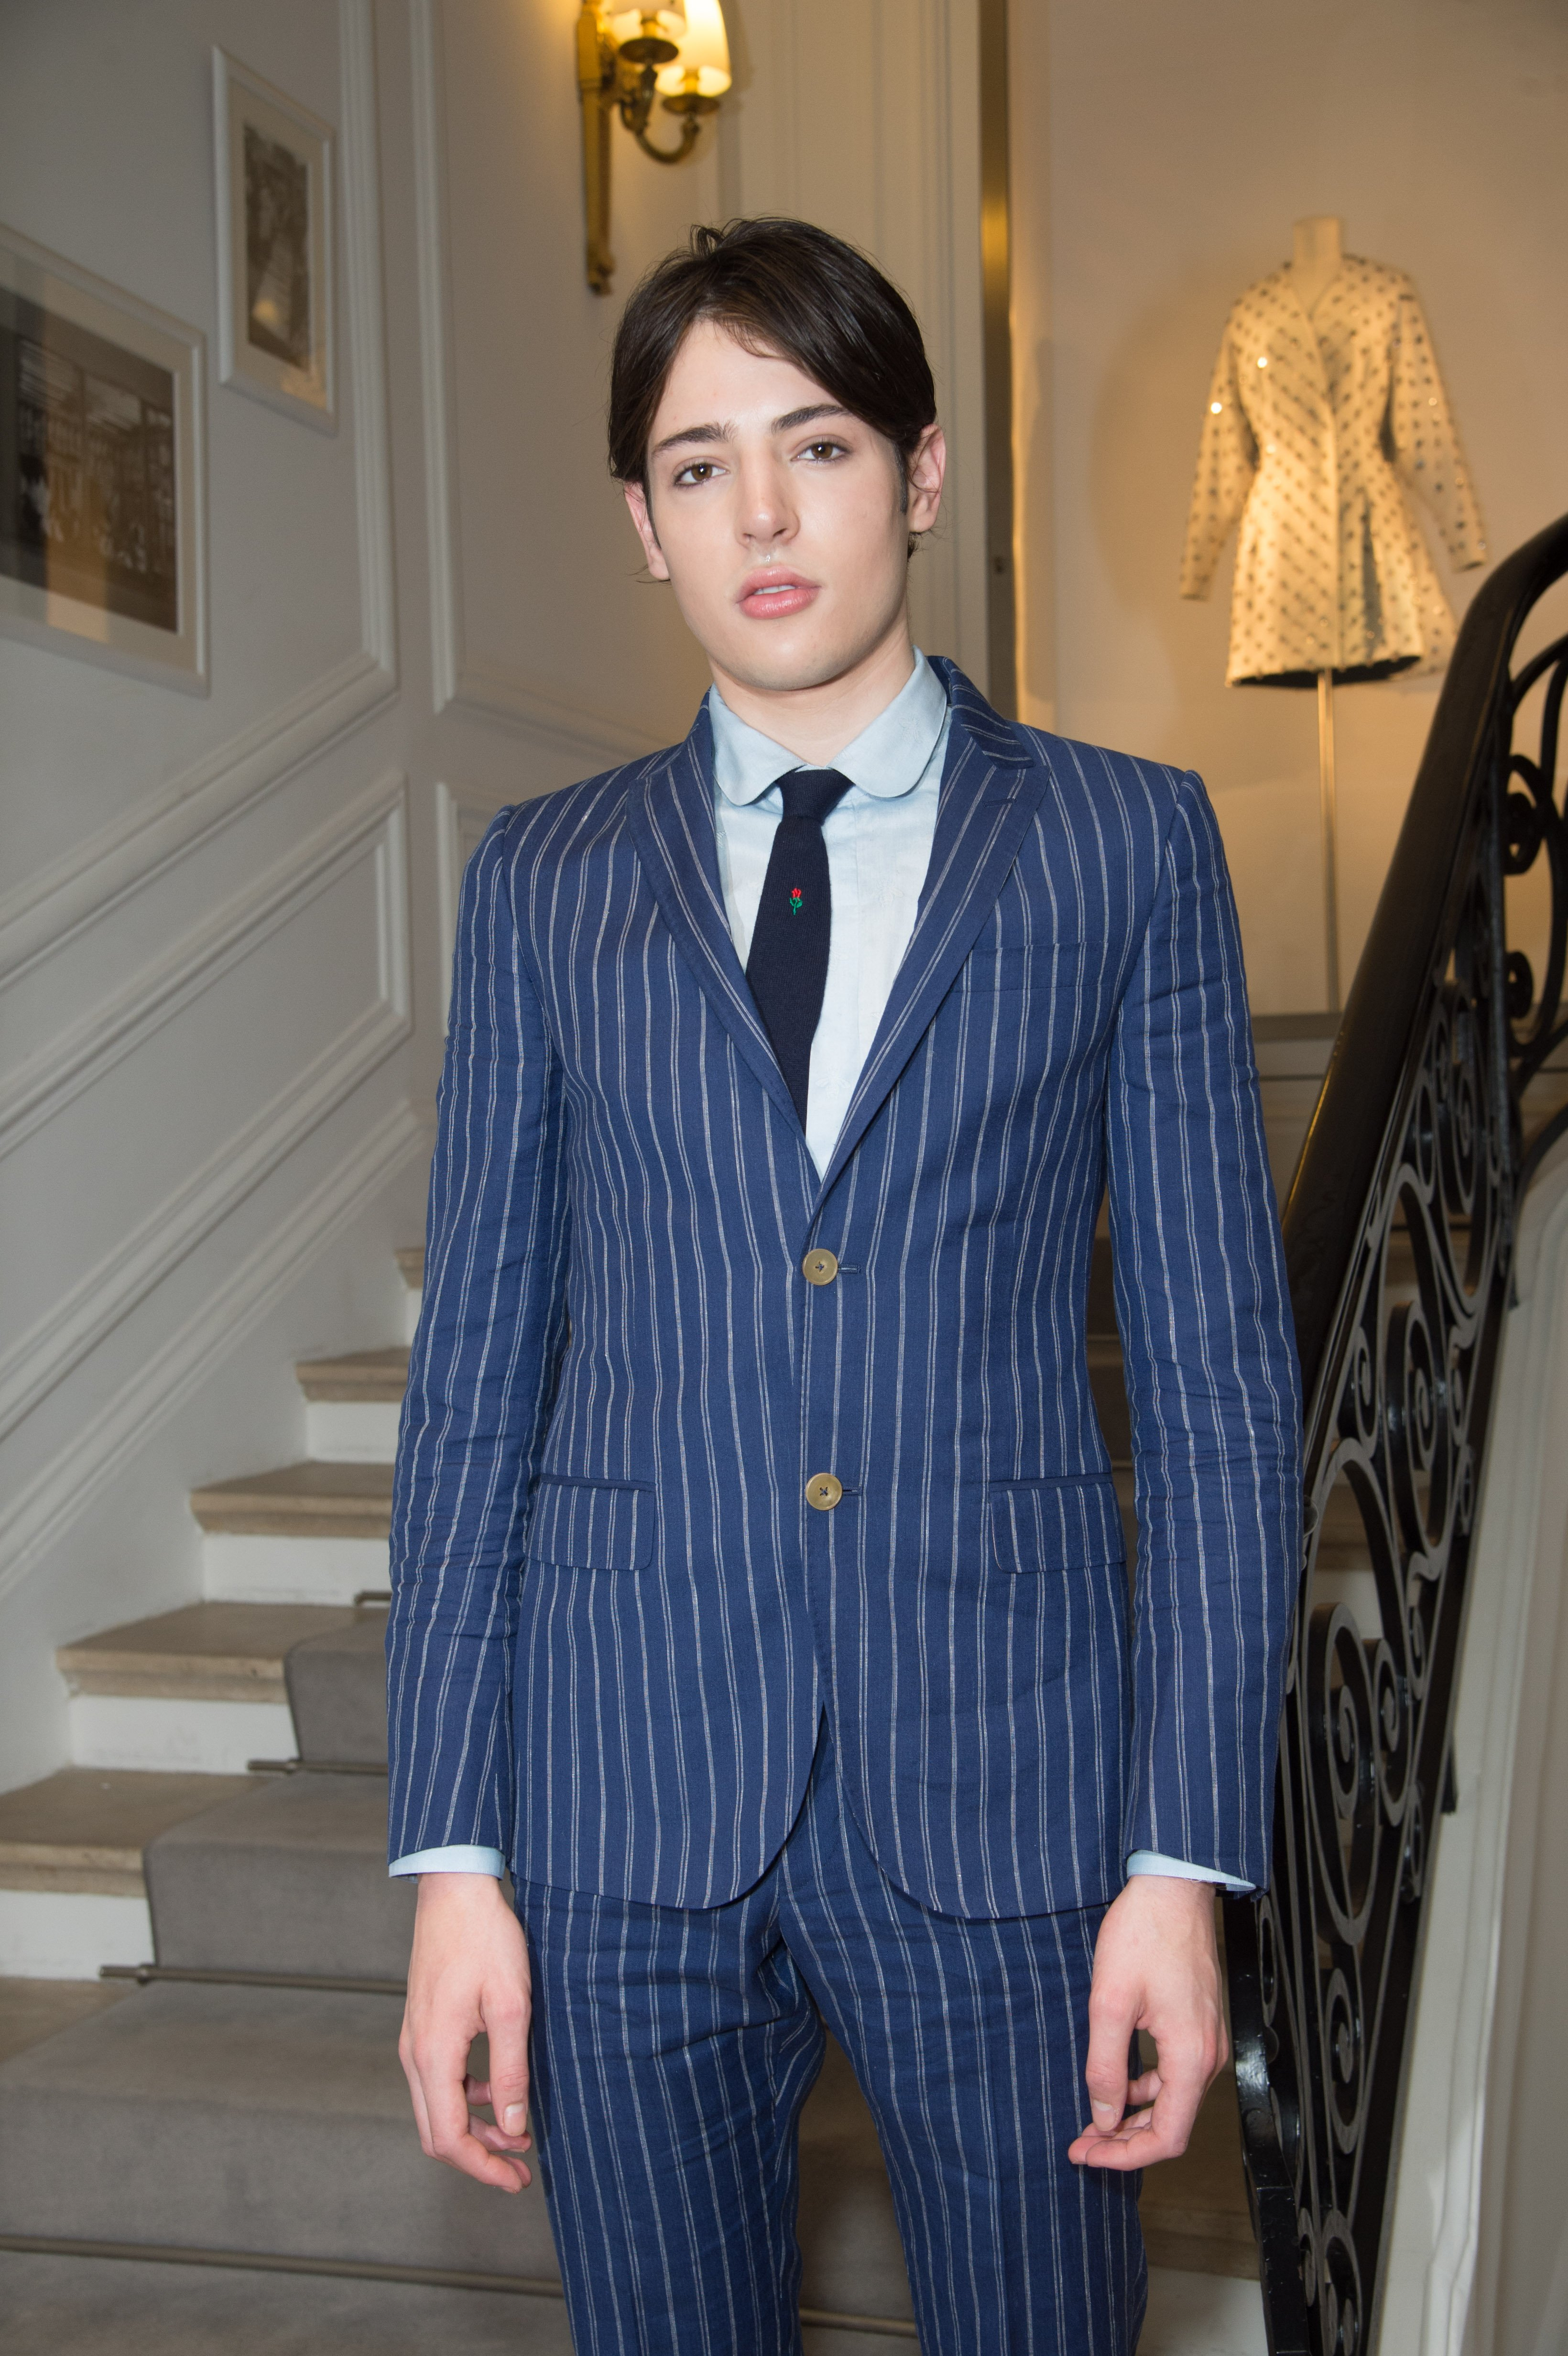 US socialite and model Harry Brant poses before Christian Dior 2016-2017 fall/winter Haute Couture collection fashion show on July 4, 2016 | Photo: Getty Images